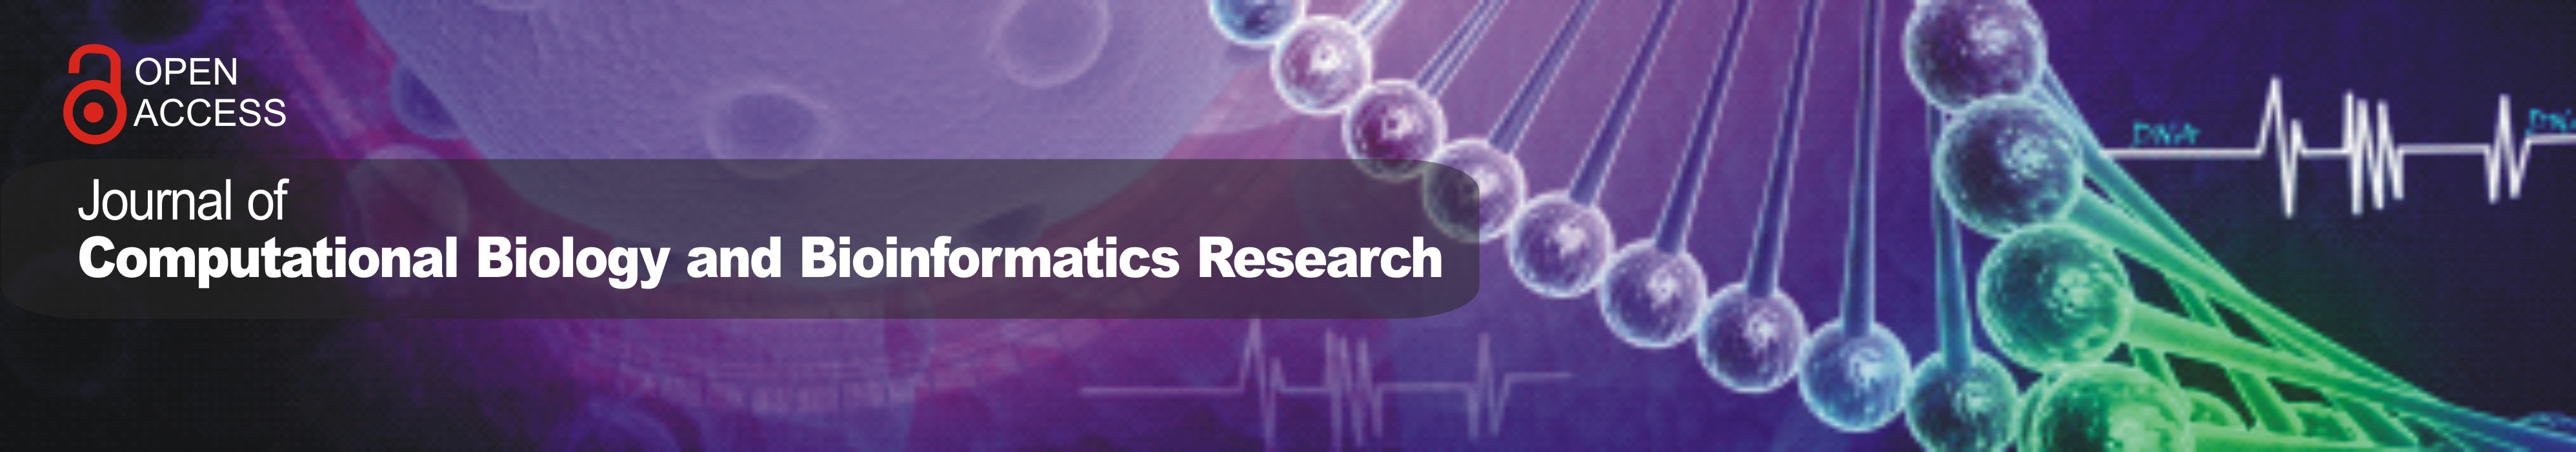 Journal of Computational Biology and Bioinformatics Research